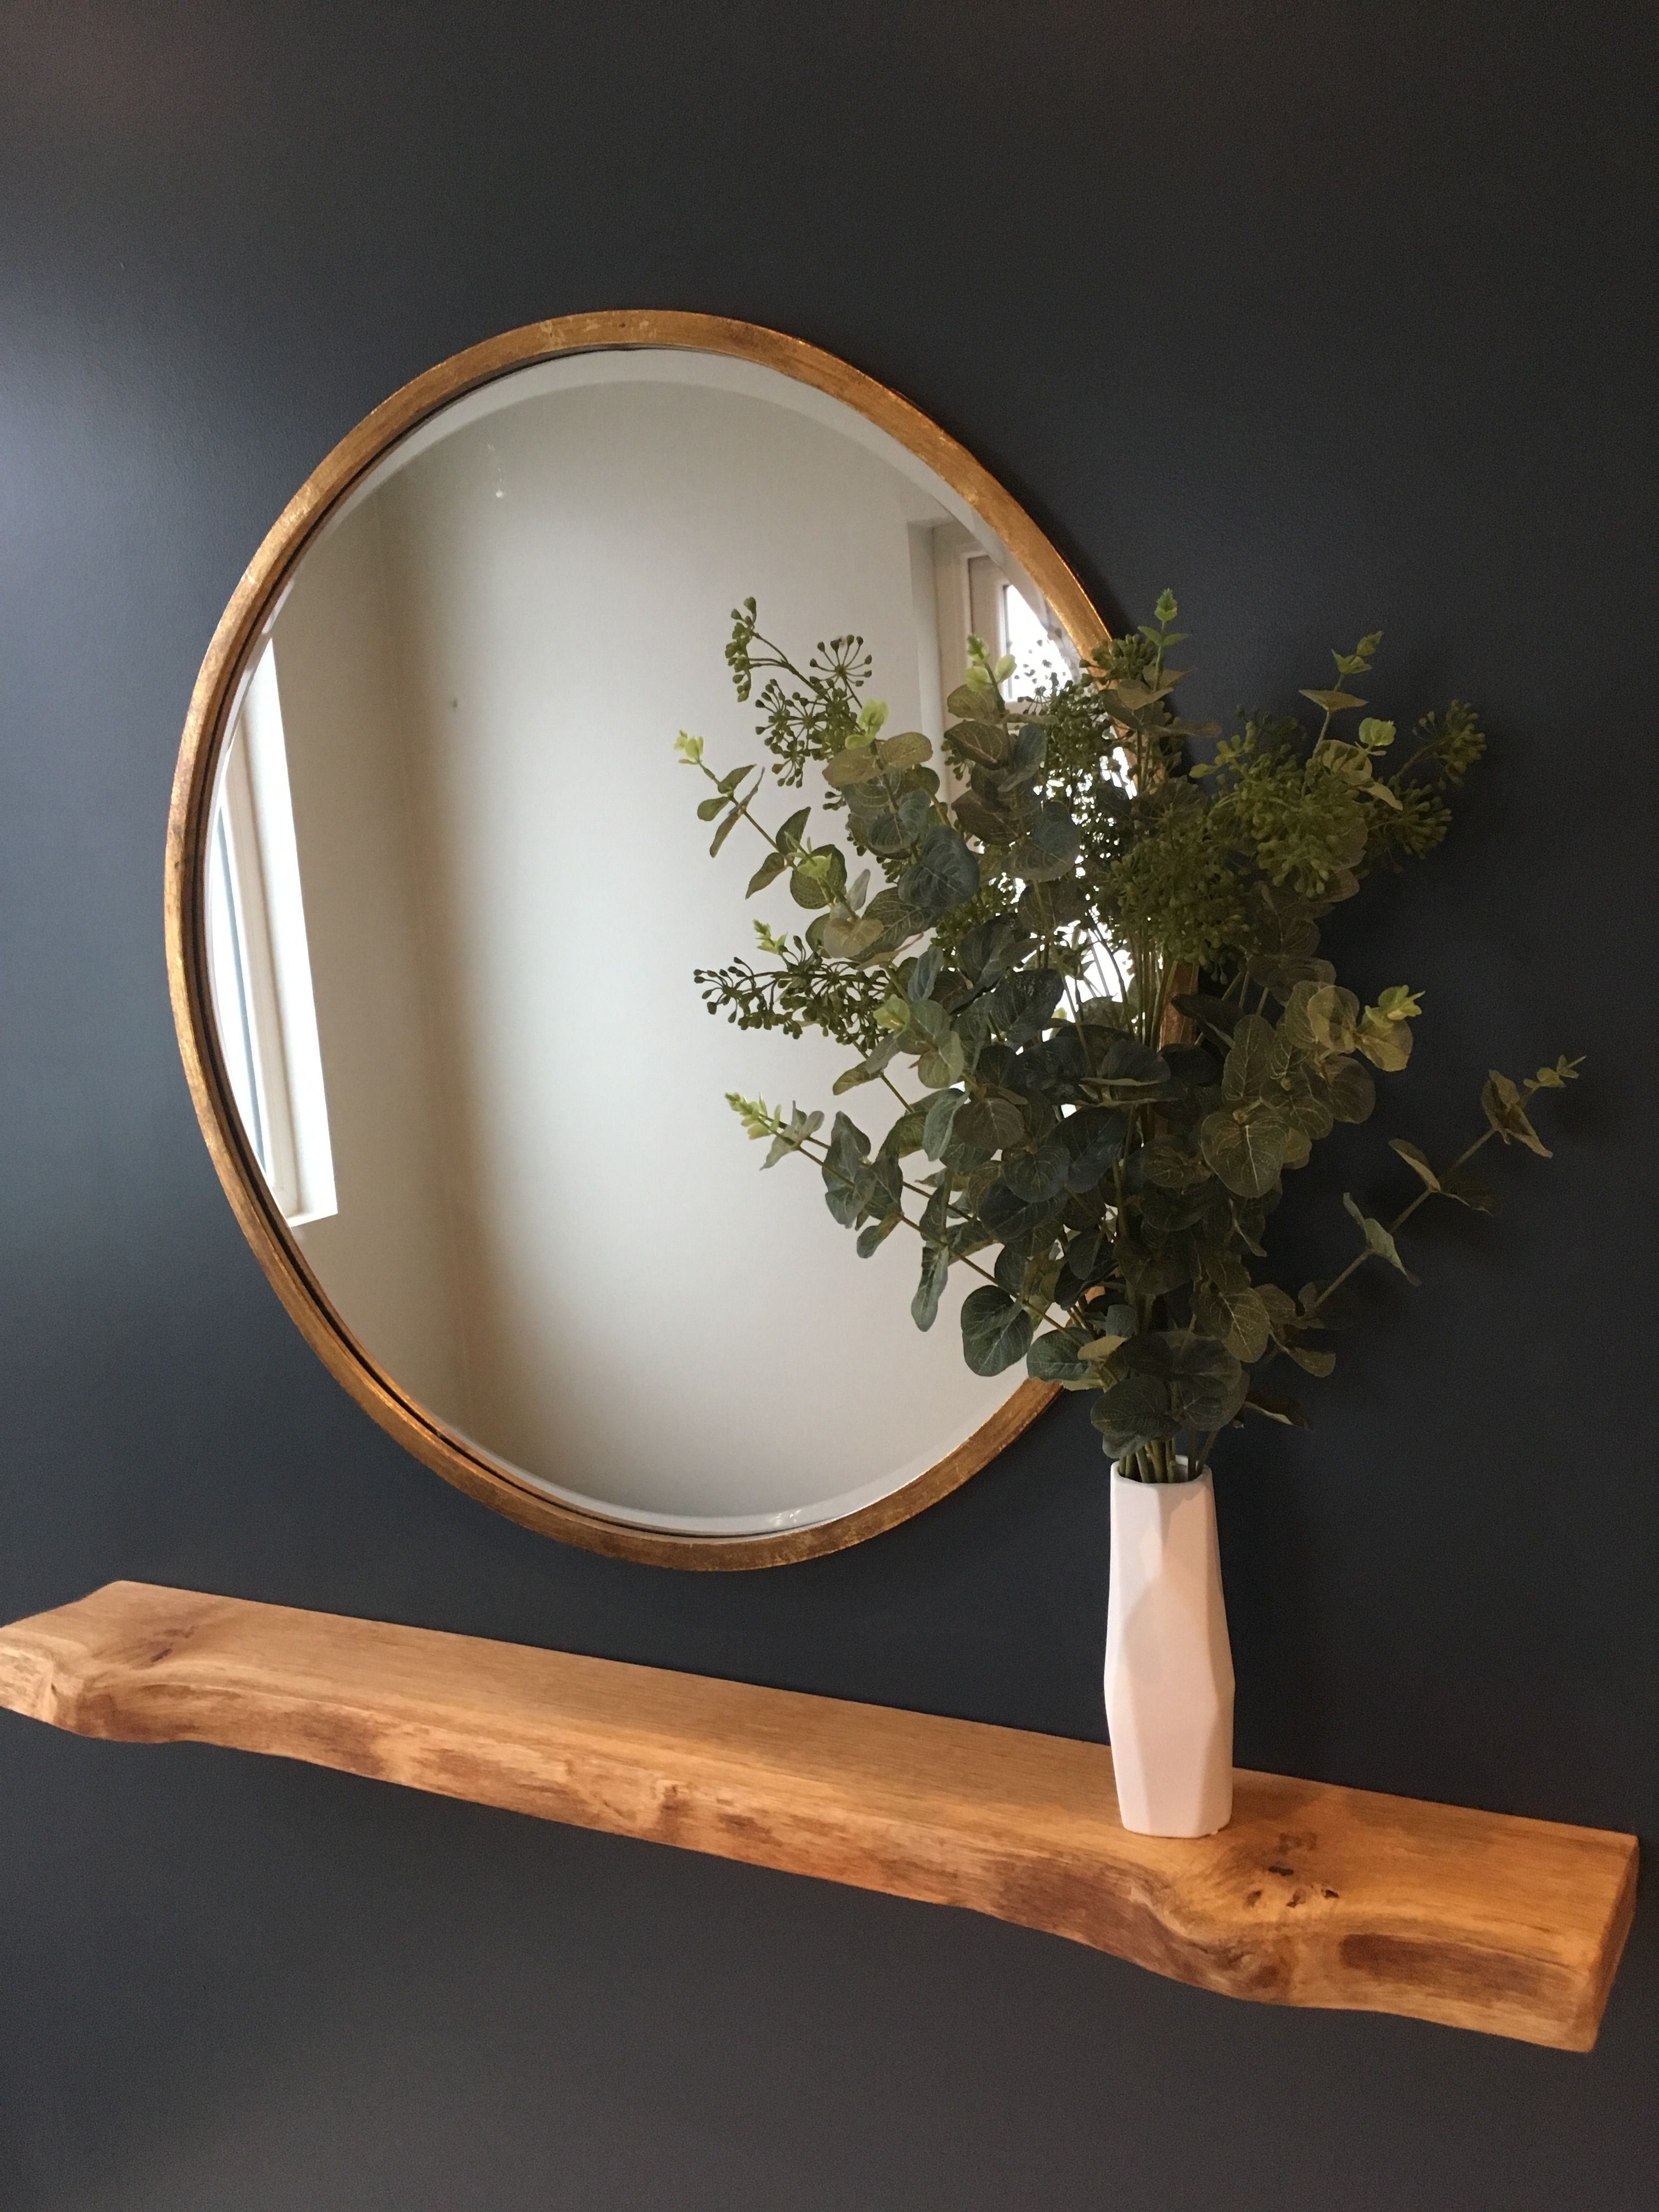 Bronze Round Mirror With Eucalyptus Leaves And A Floating Oak